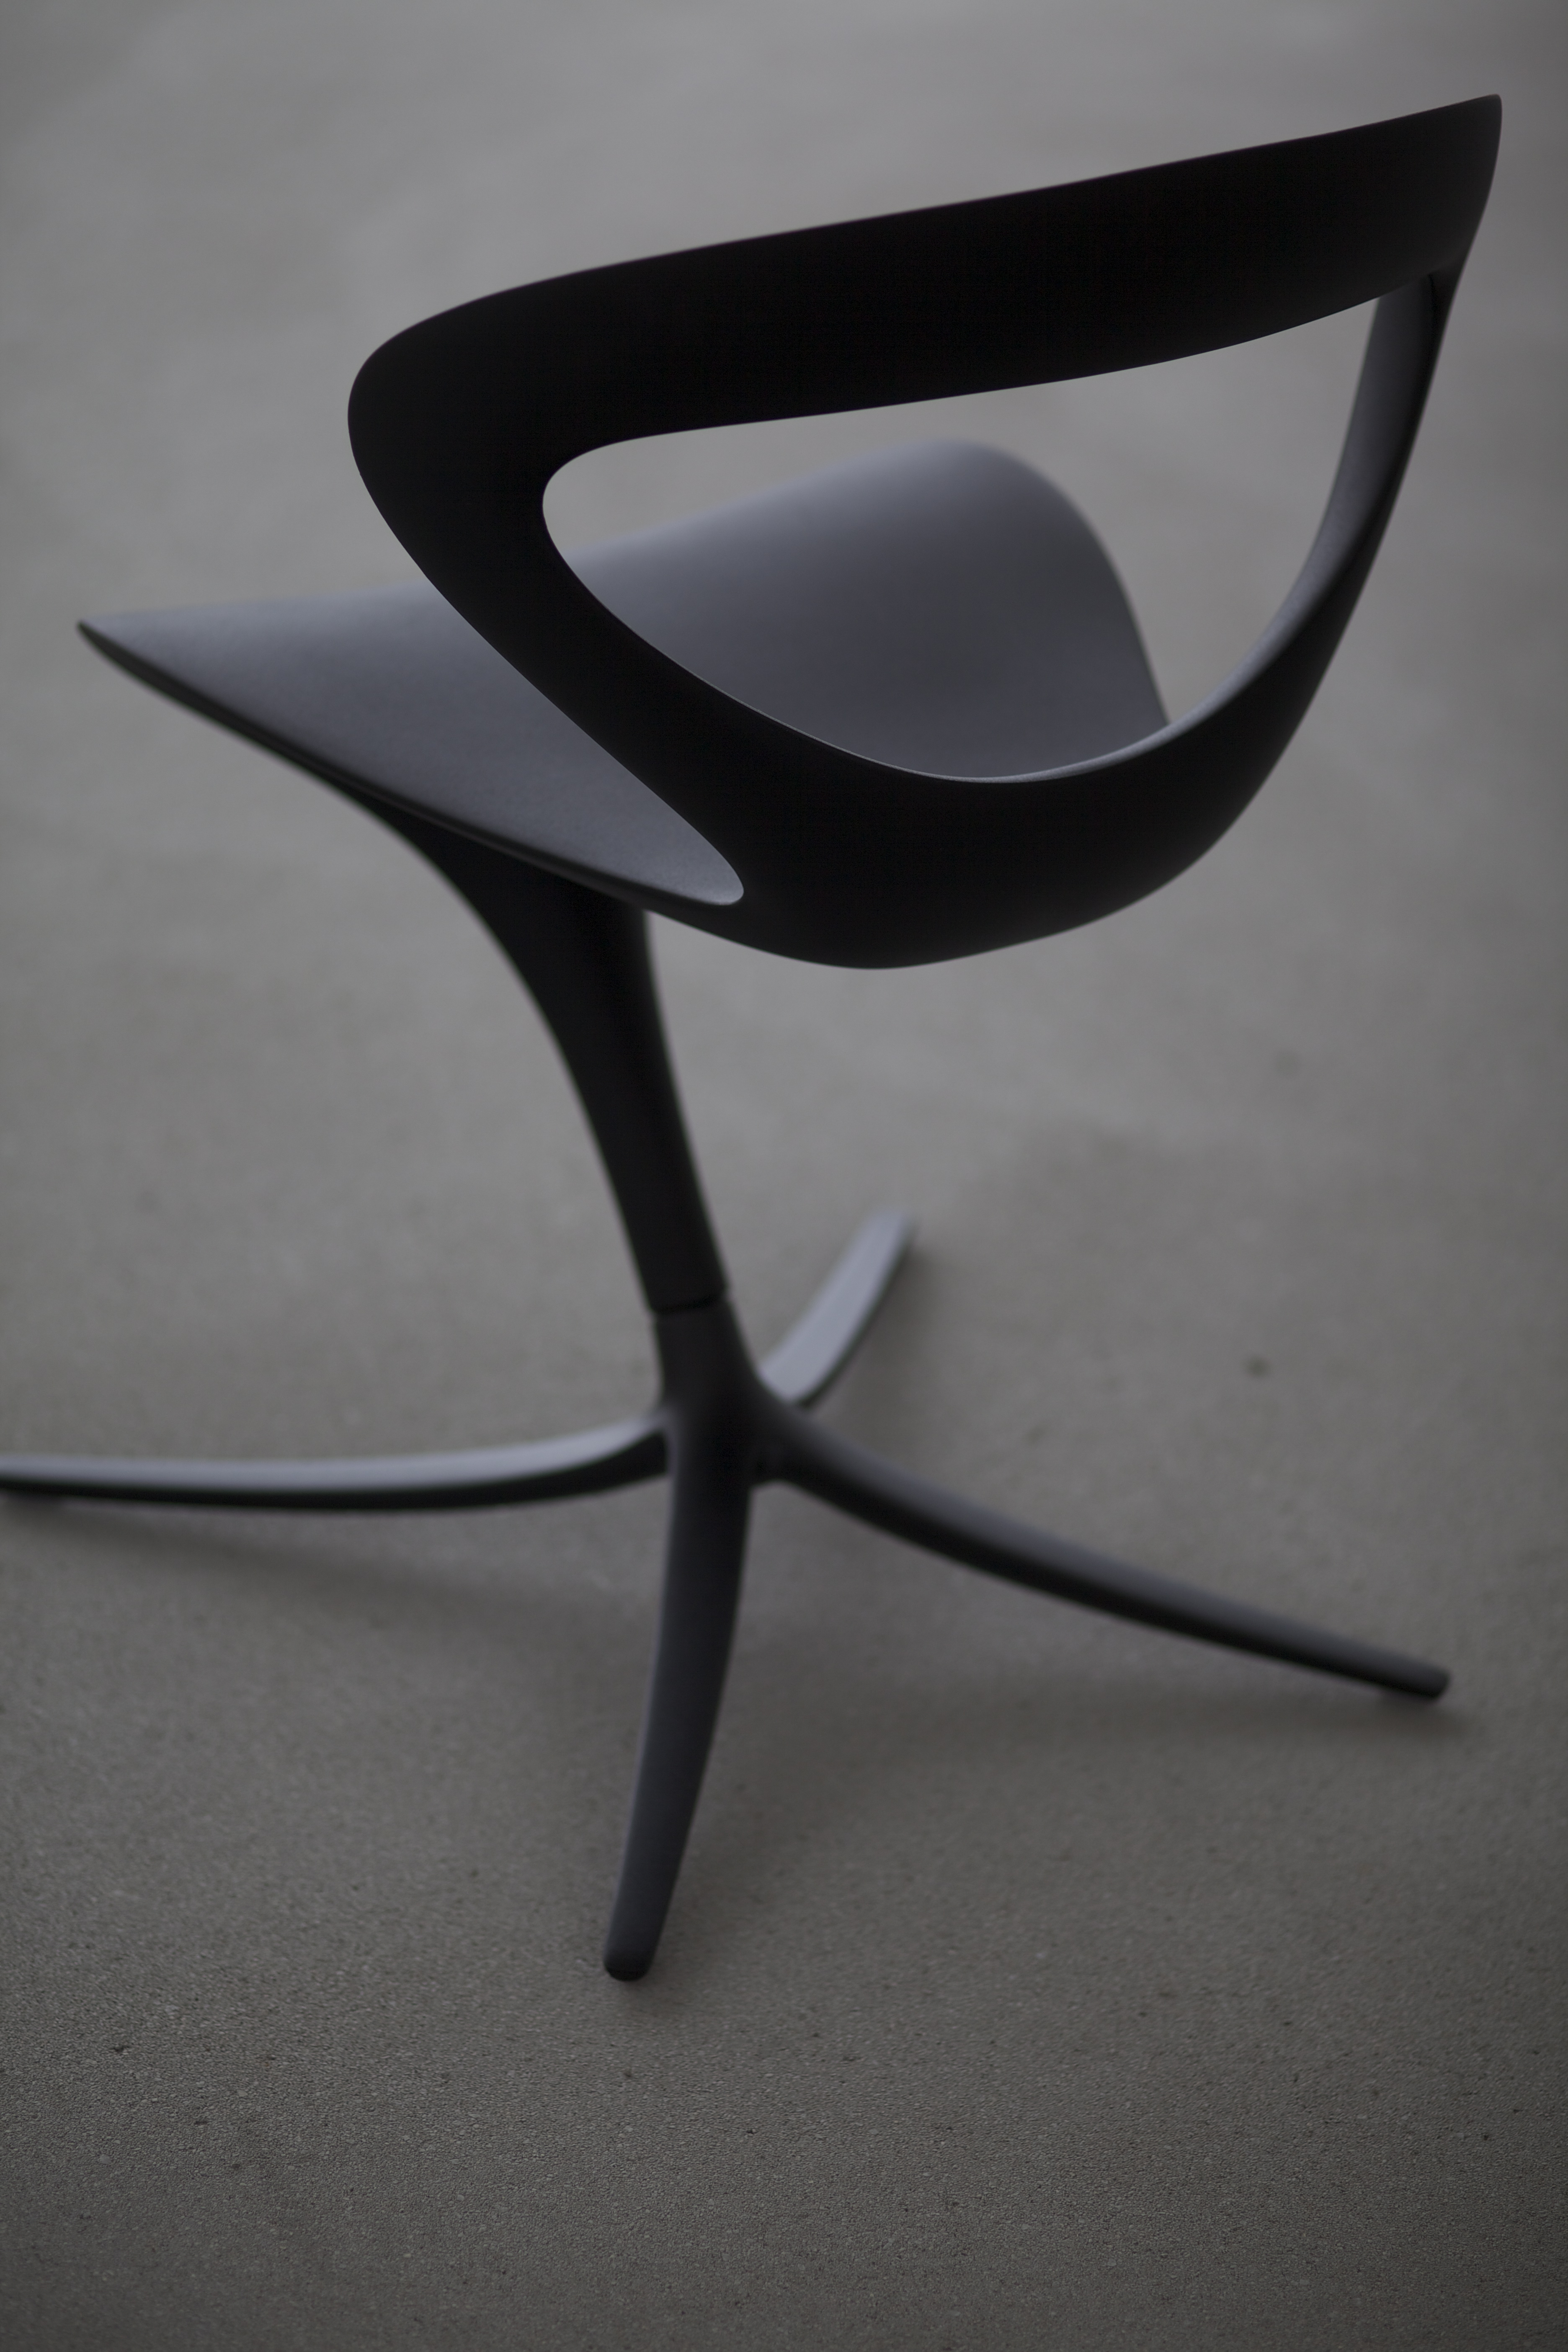 """call it a"""" chair or tell me how does it look like ostwalddesign"""